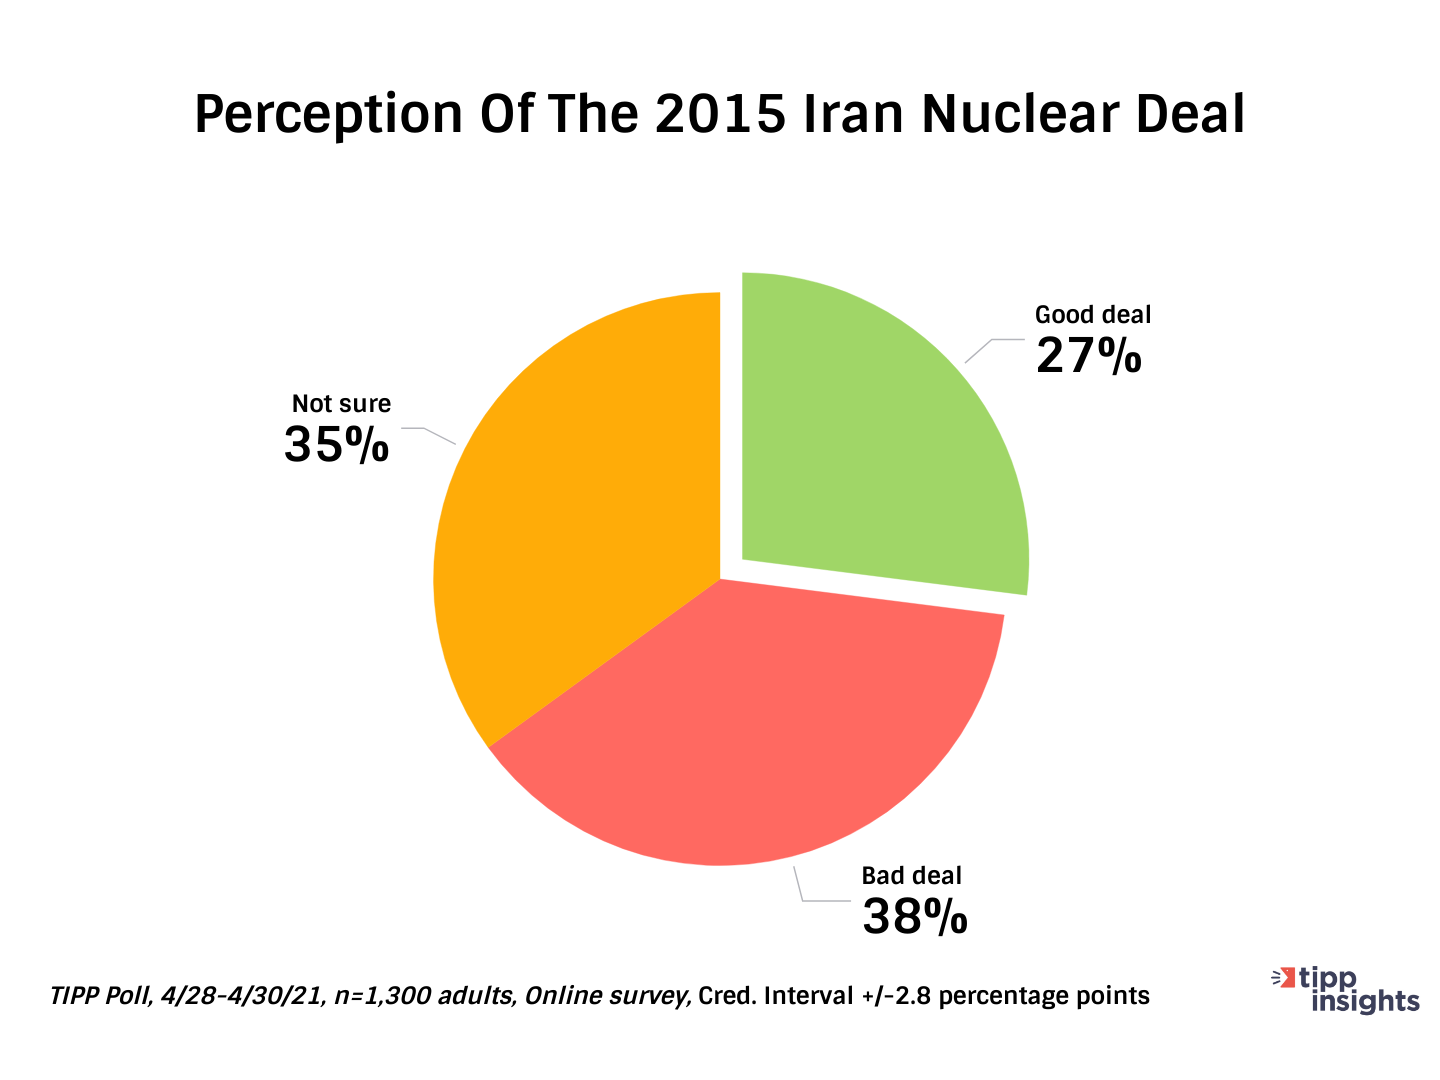 Perception Of The 2015 Iran Nuclear Deal - Chart - TIPP